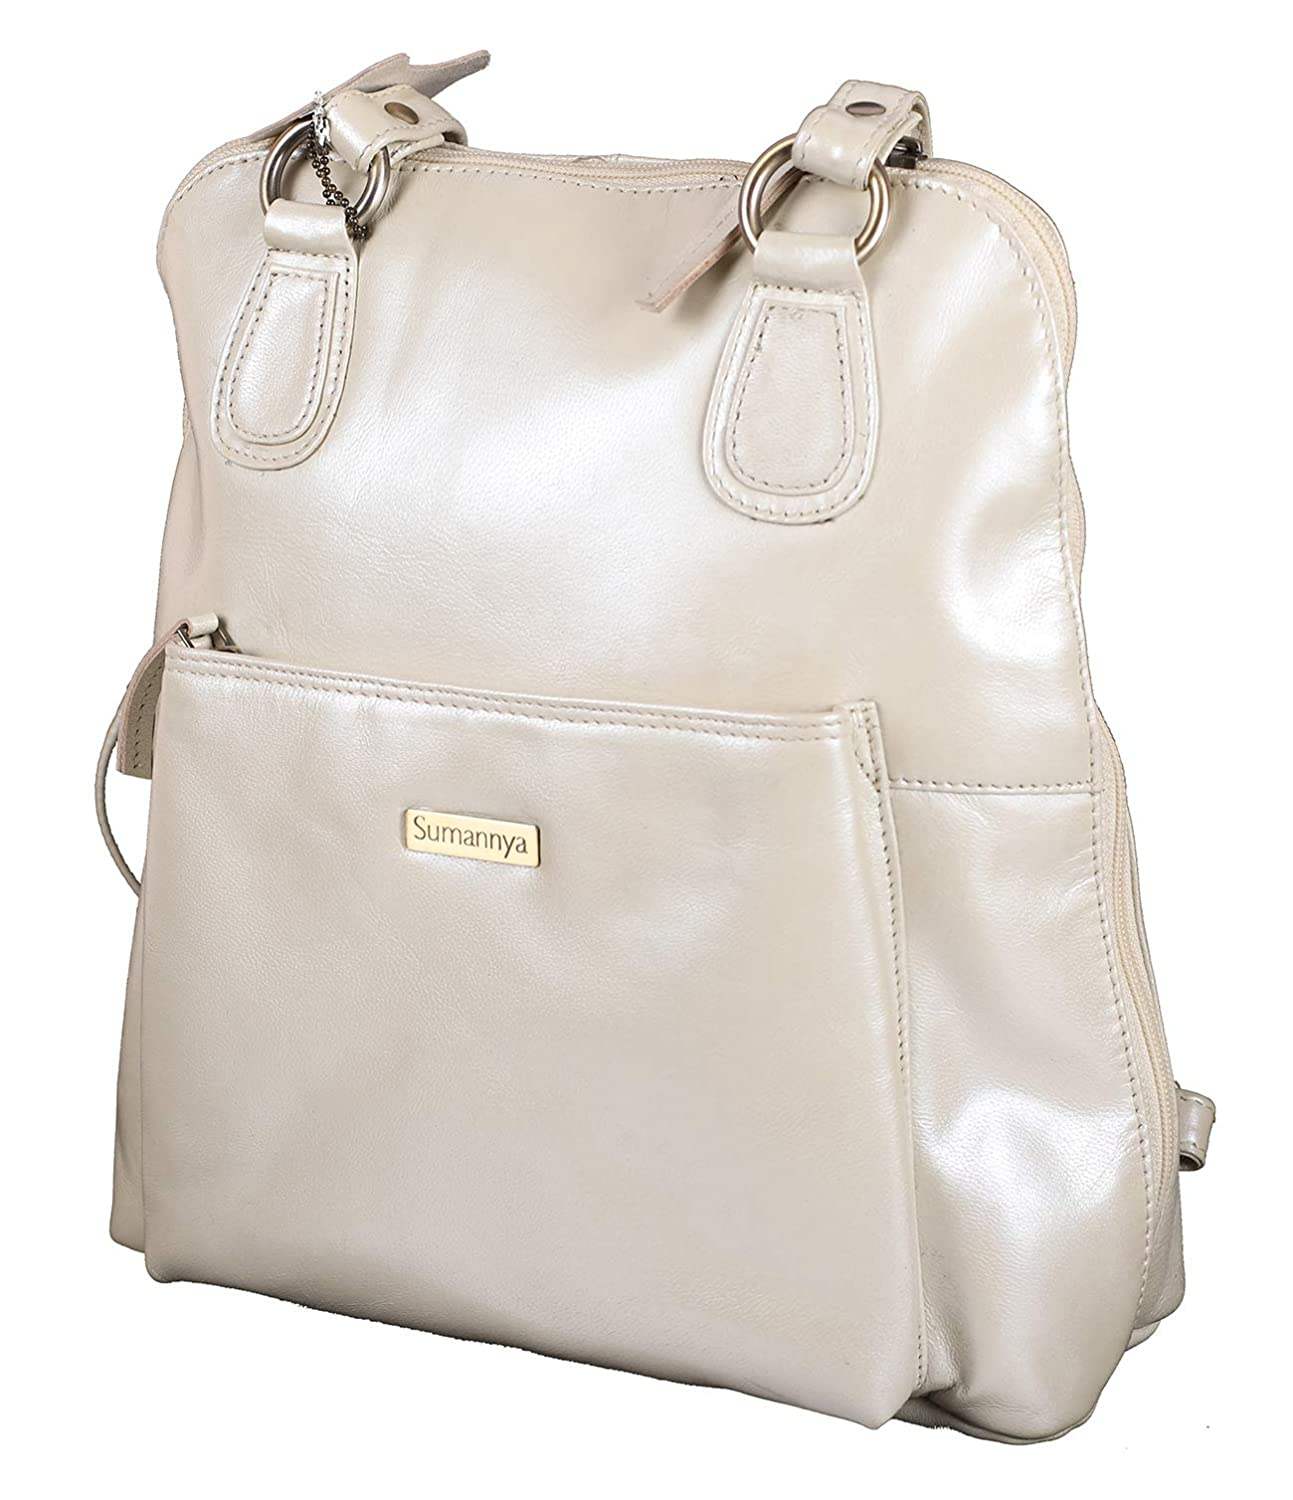 fe52a507d4b5 Buy Sumannya Genuine Leather White Ladies Handbag Backpack Online at Low  Prices in India - Amazon.in